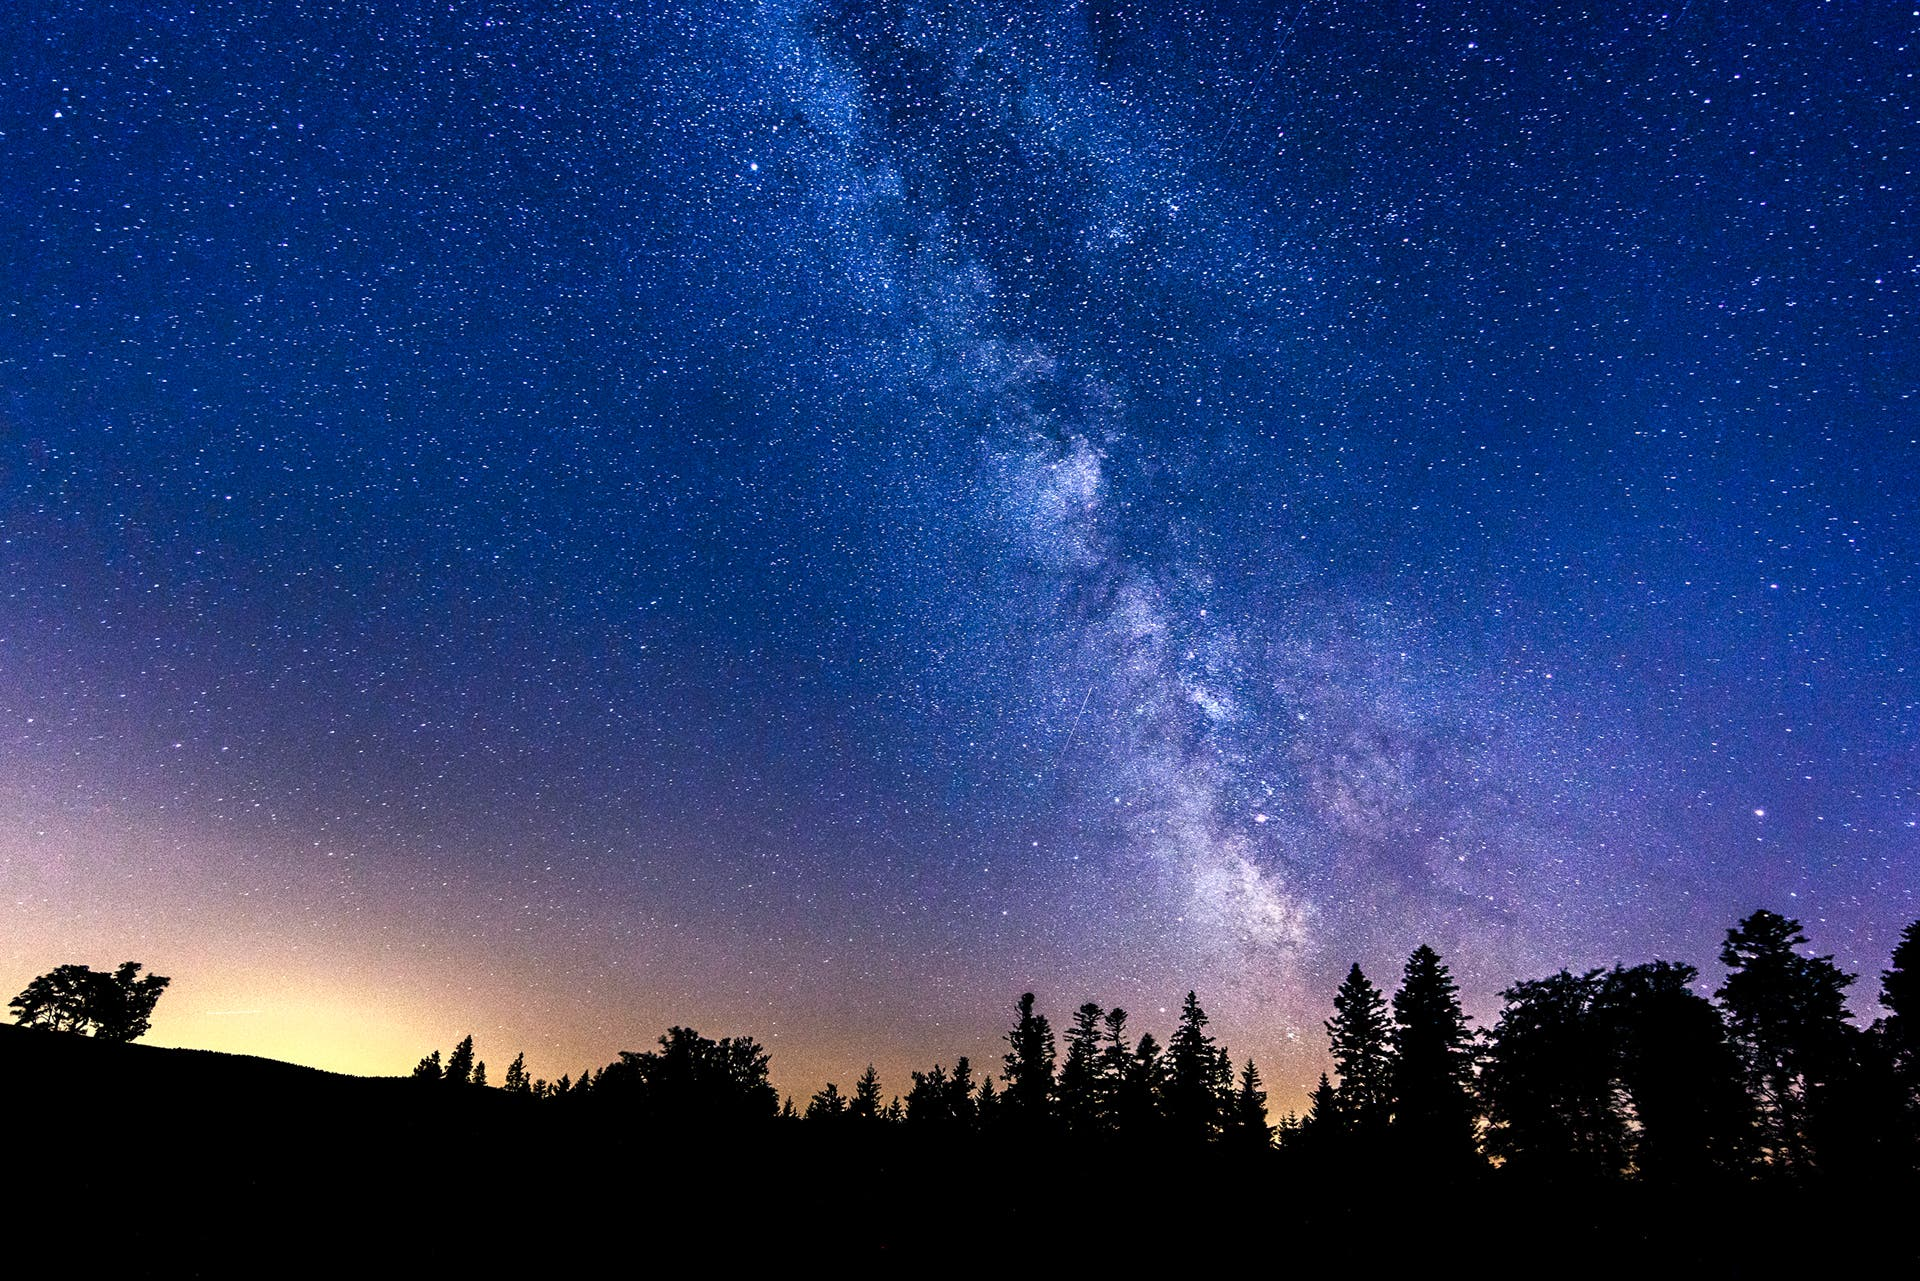 Damien Guiot: Summer Nightscapes to Make You Long for Starry Nights